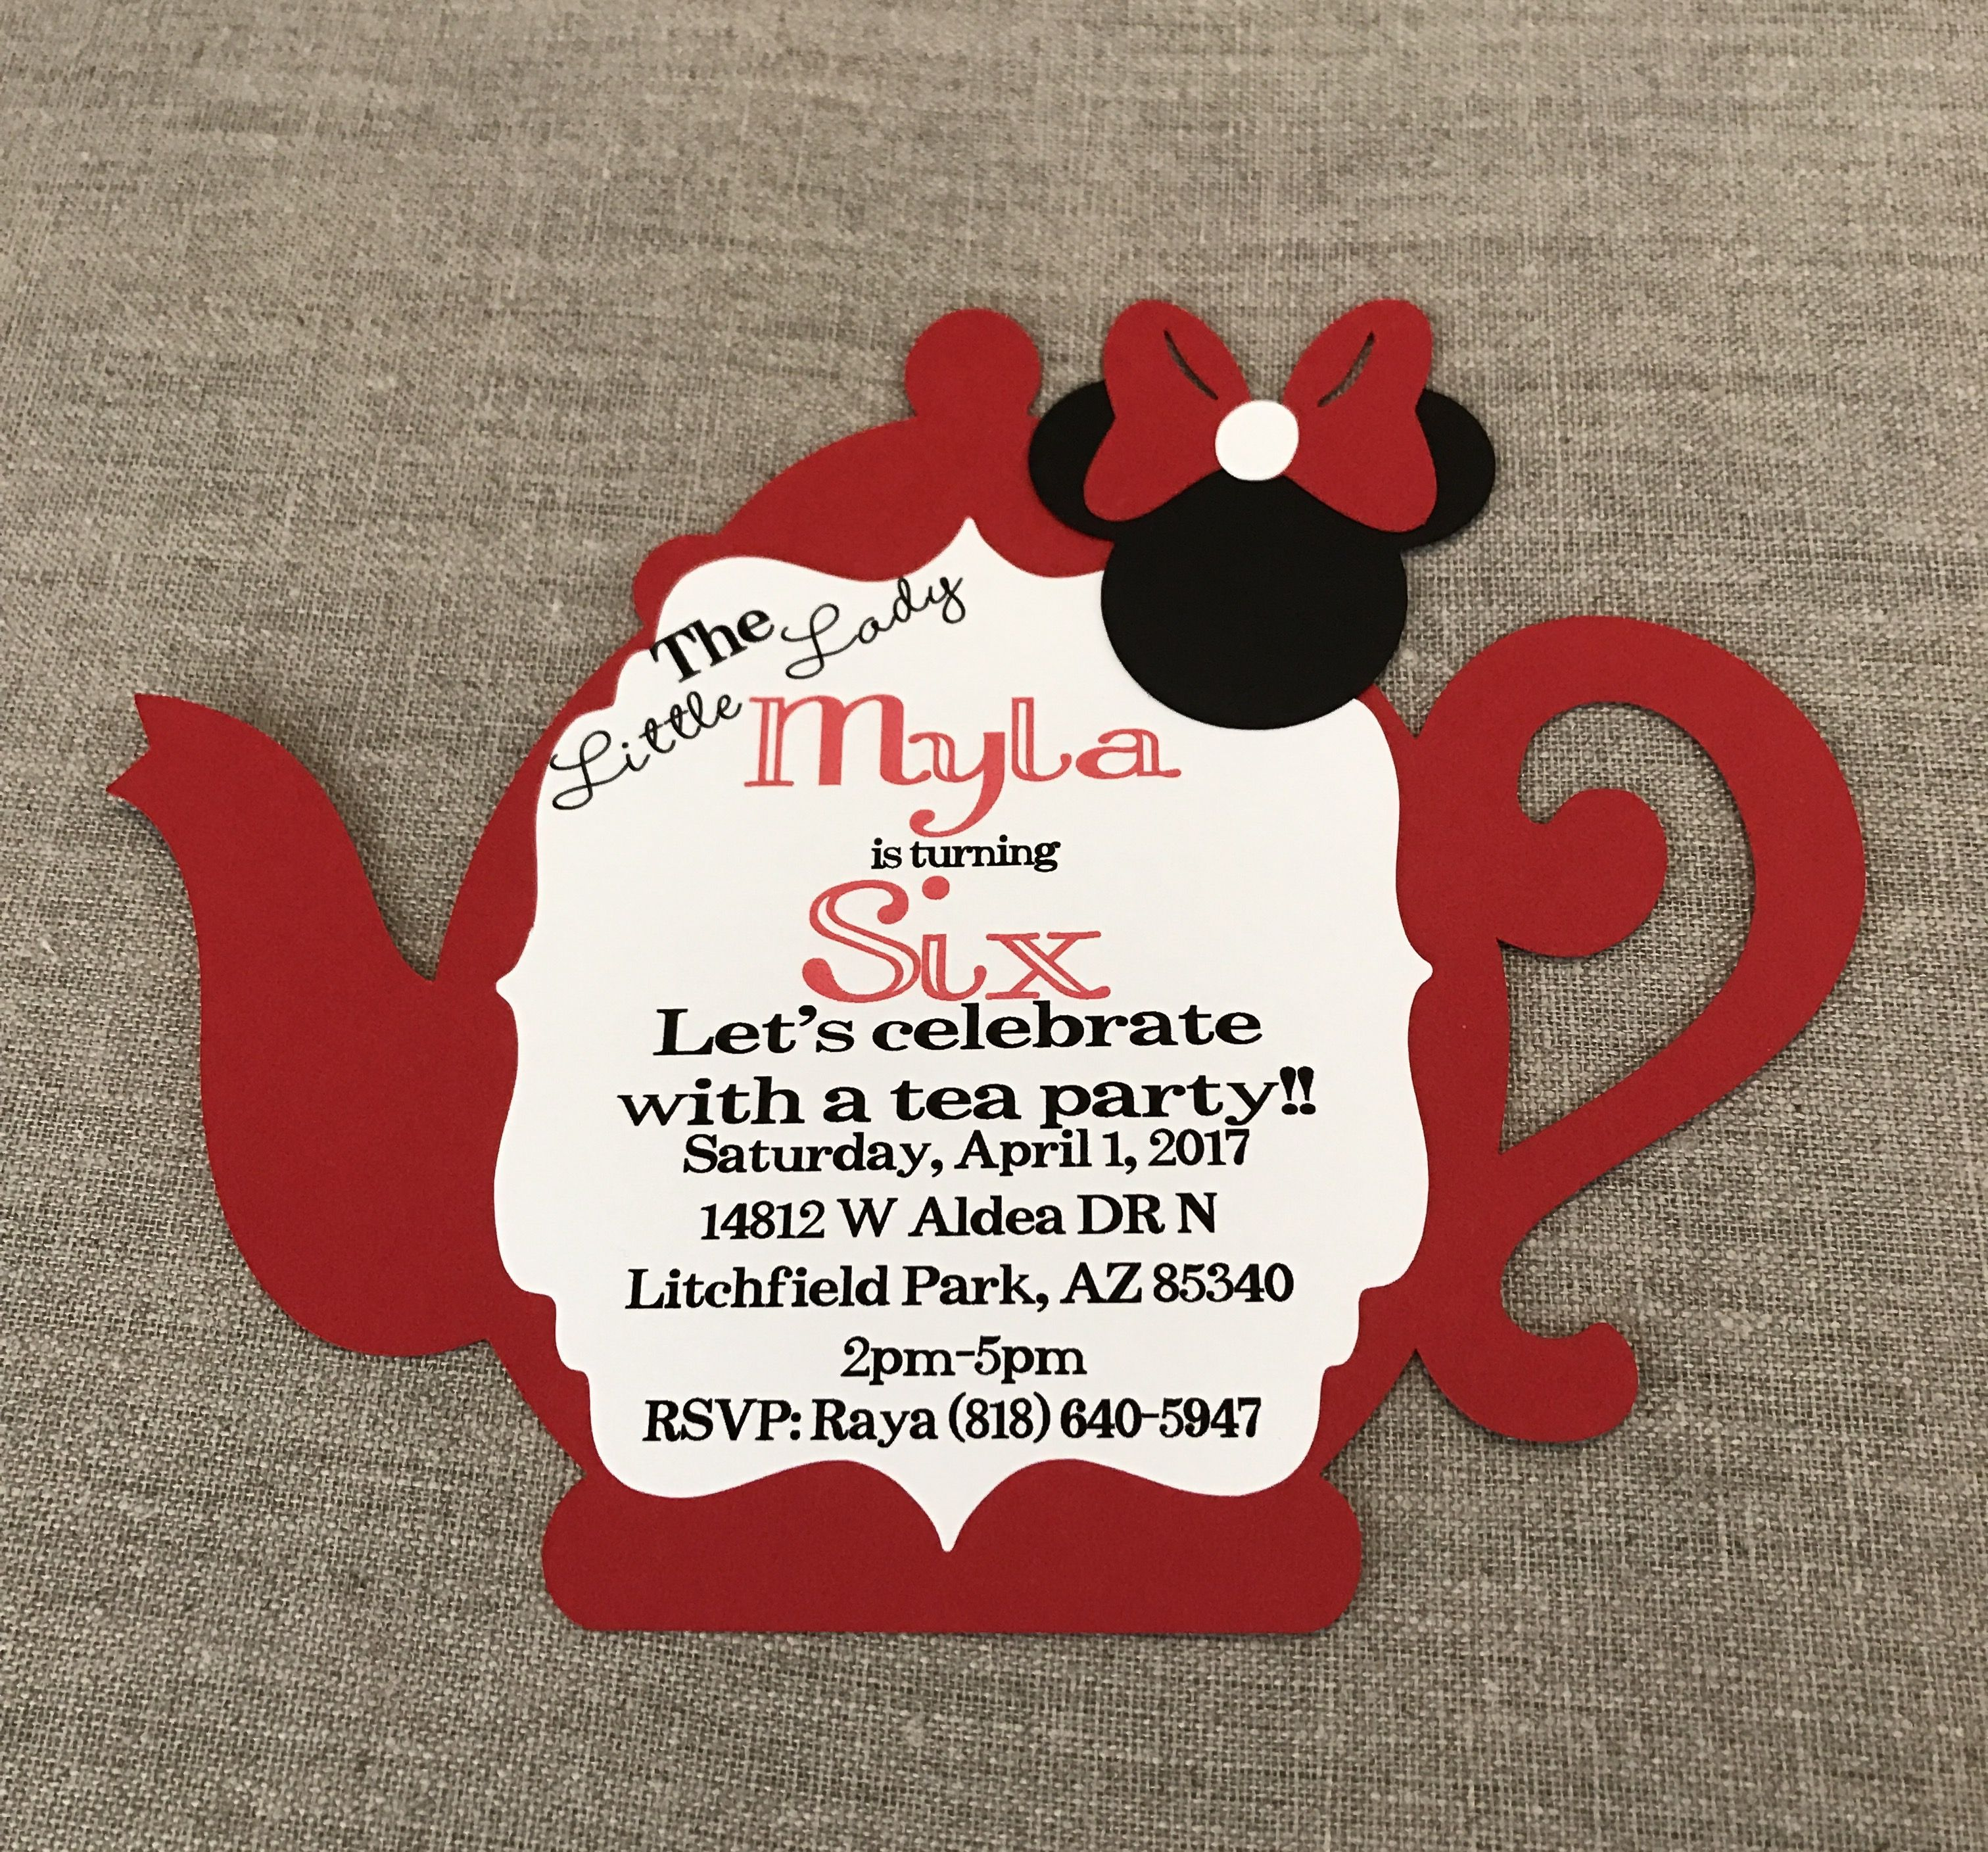 Pin by Ruffles & Cornbread on handcrafted invitations | Pinterest